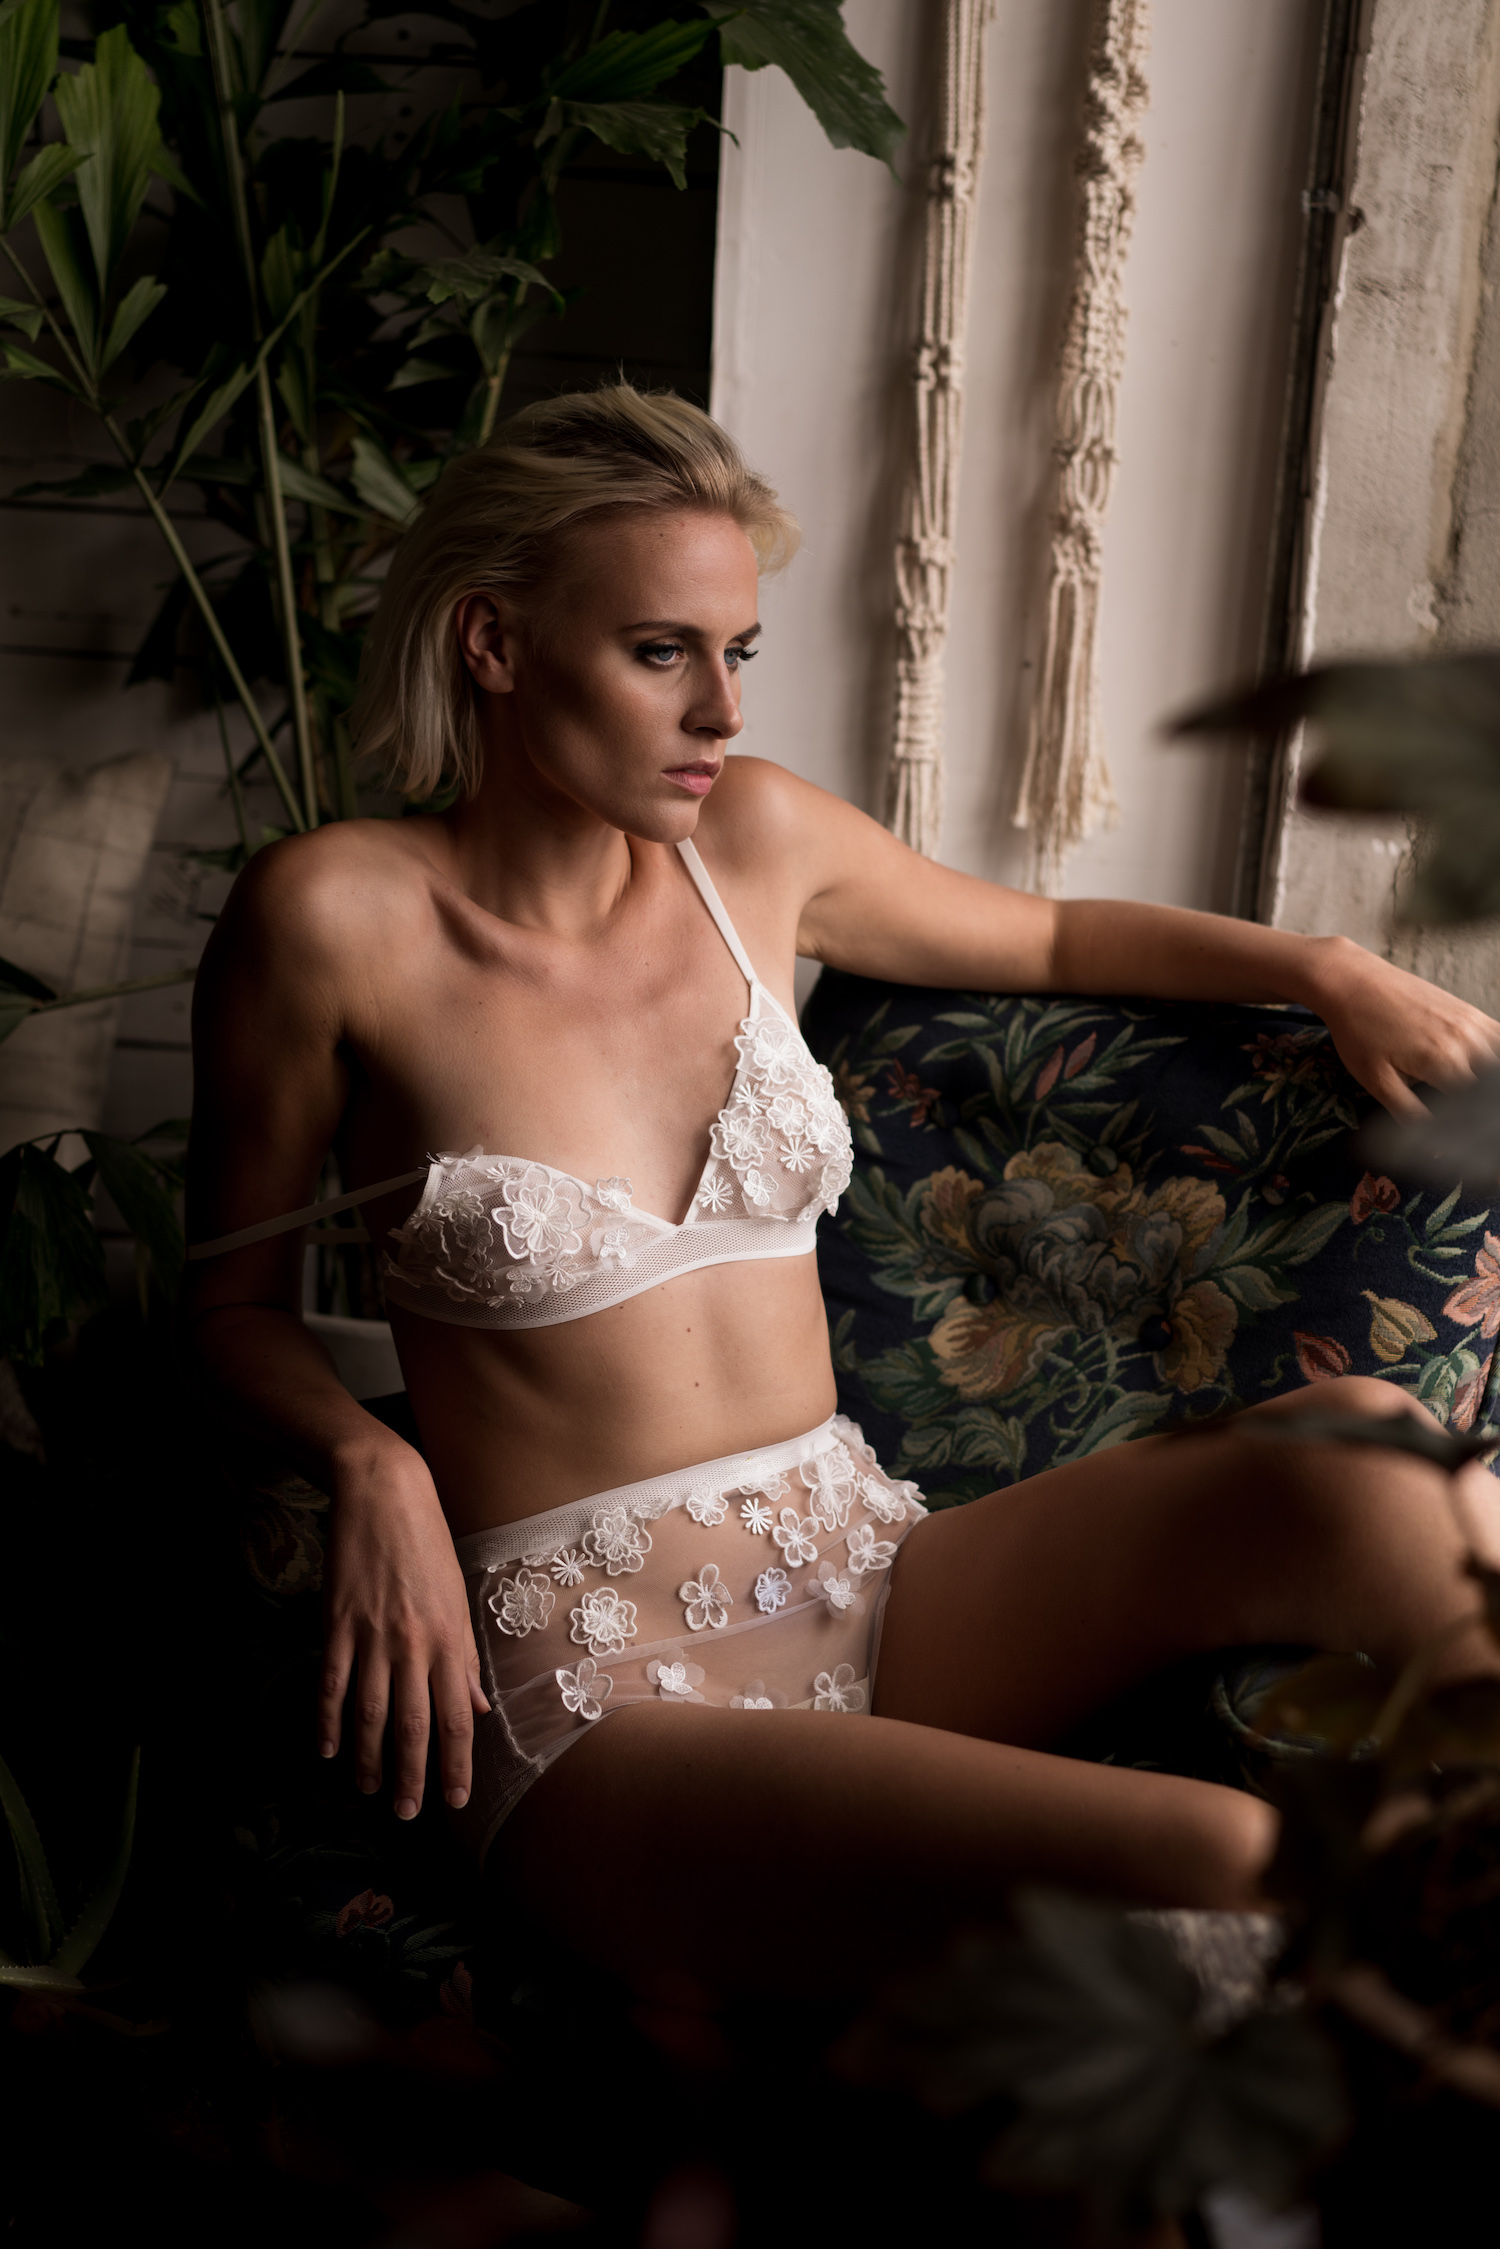 Shoot for Loulette Lingerie   Makeup and hair - Makeup By Joh  Photographer - Edelle Kenny  Model - Anne Windsland